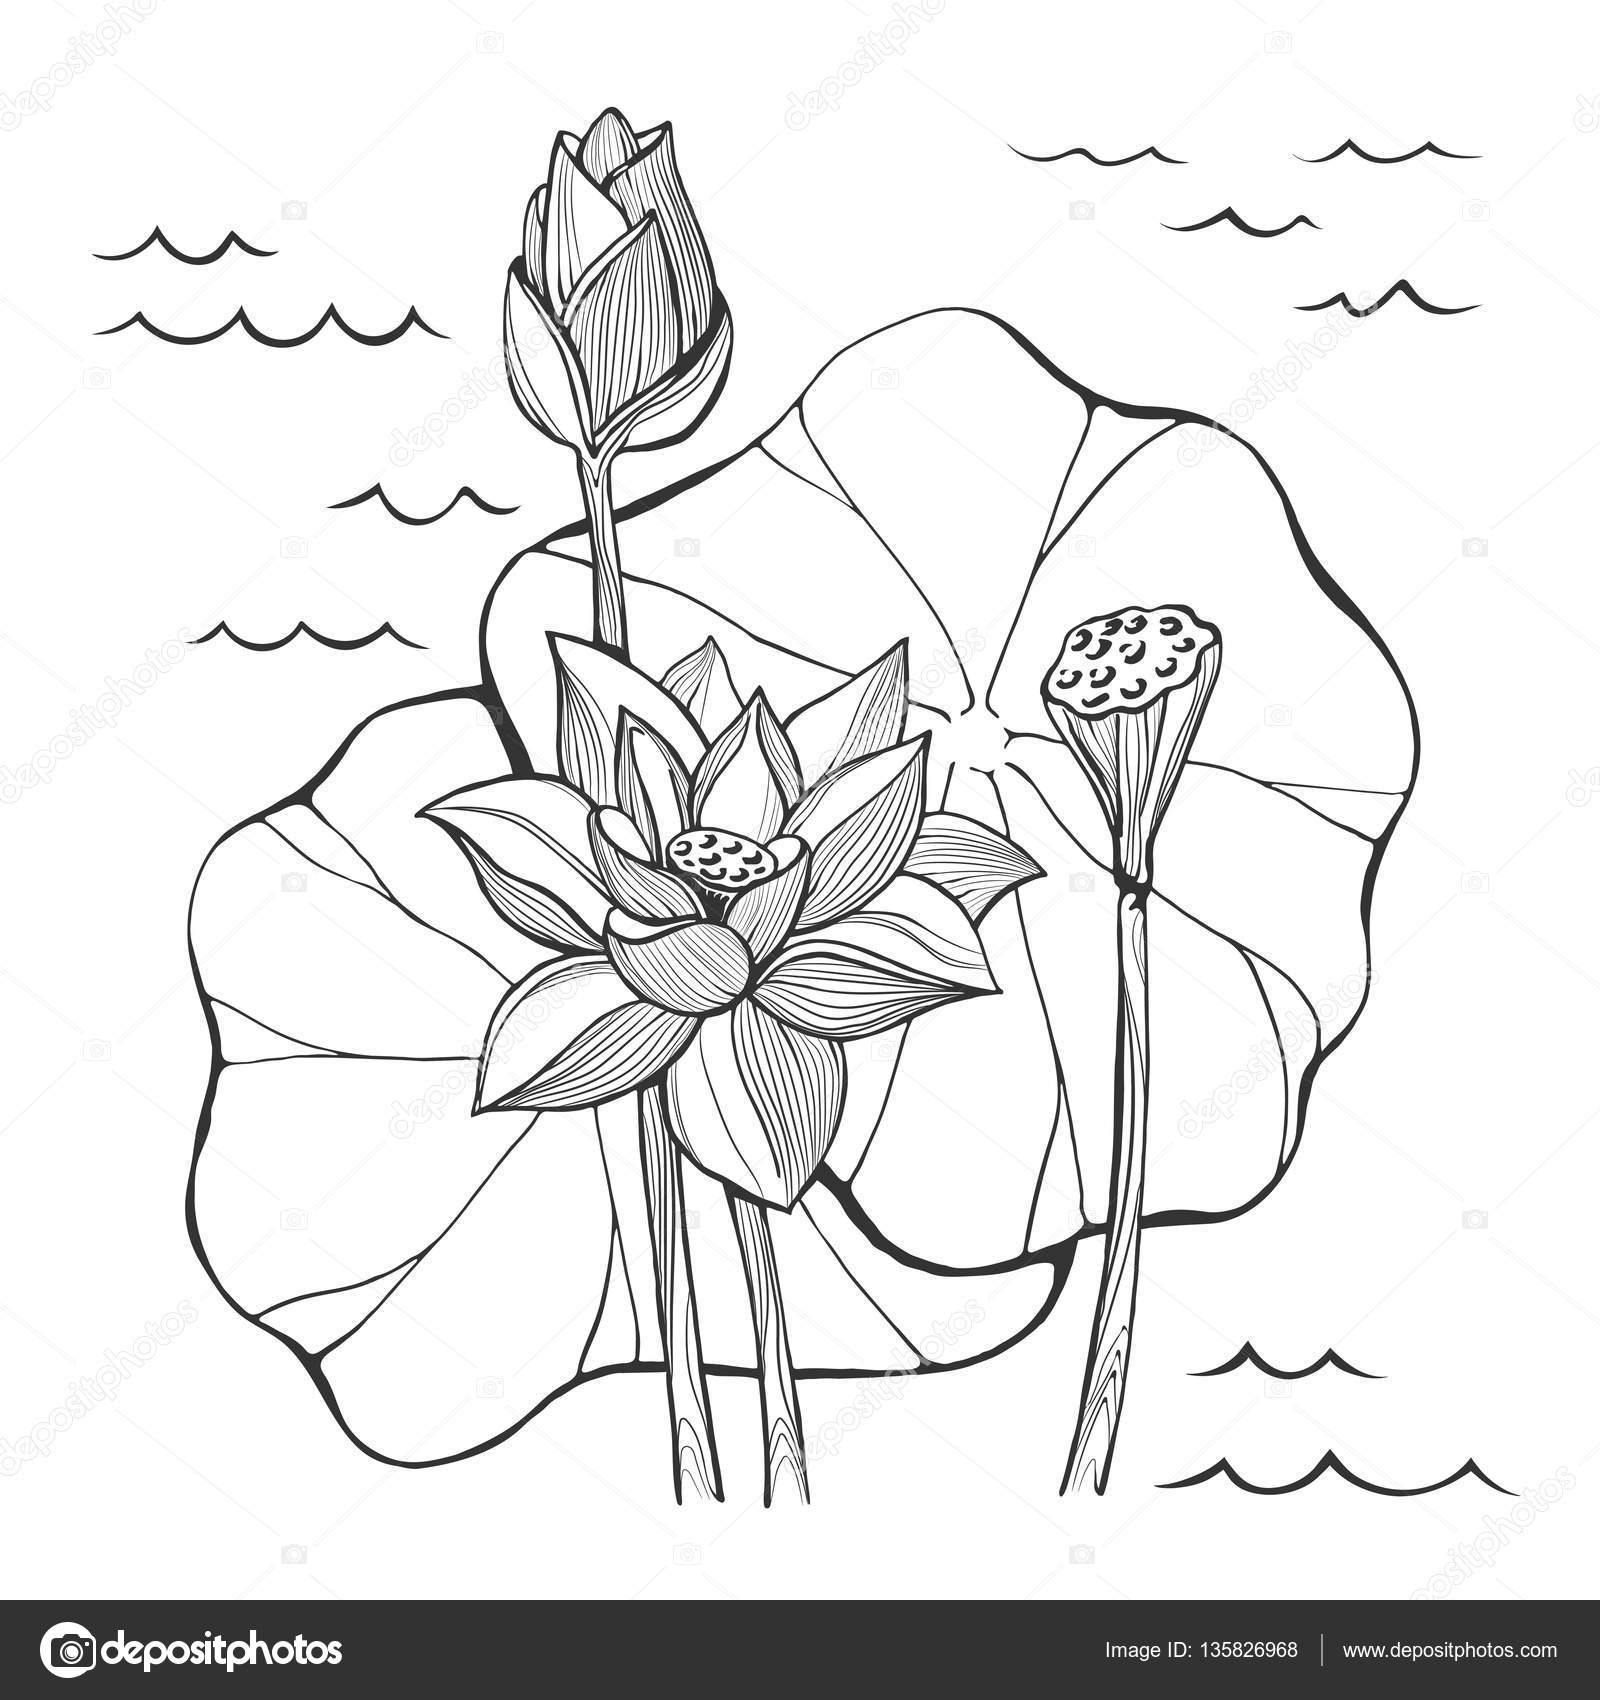 Vector sketch lotus flowers bud and seeds stock vector roma79 vector sketch lotus flowers bud and seeds stock vector mightylinksfo